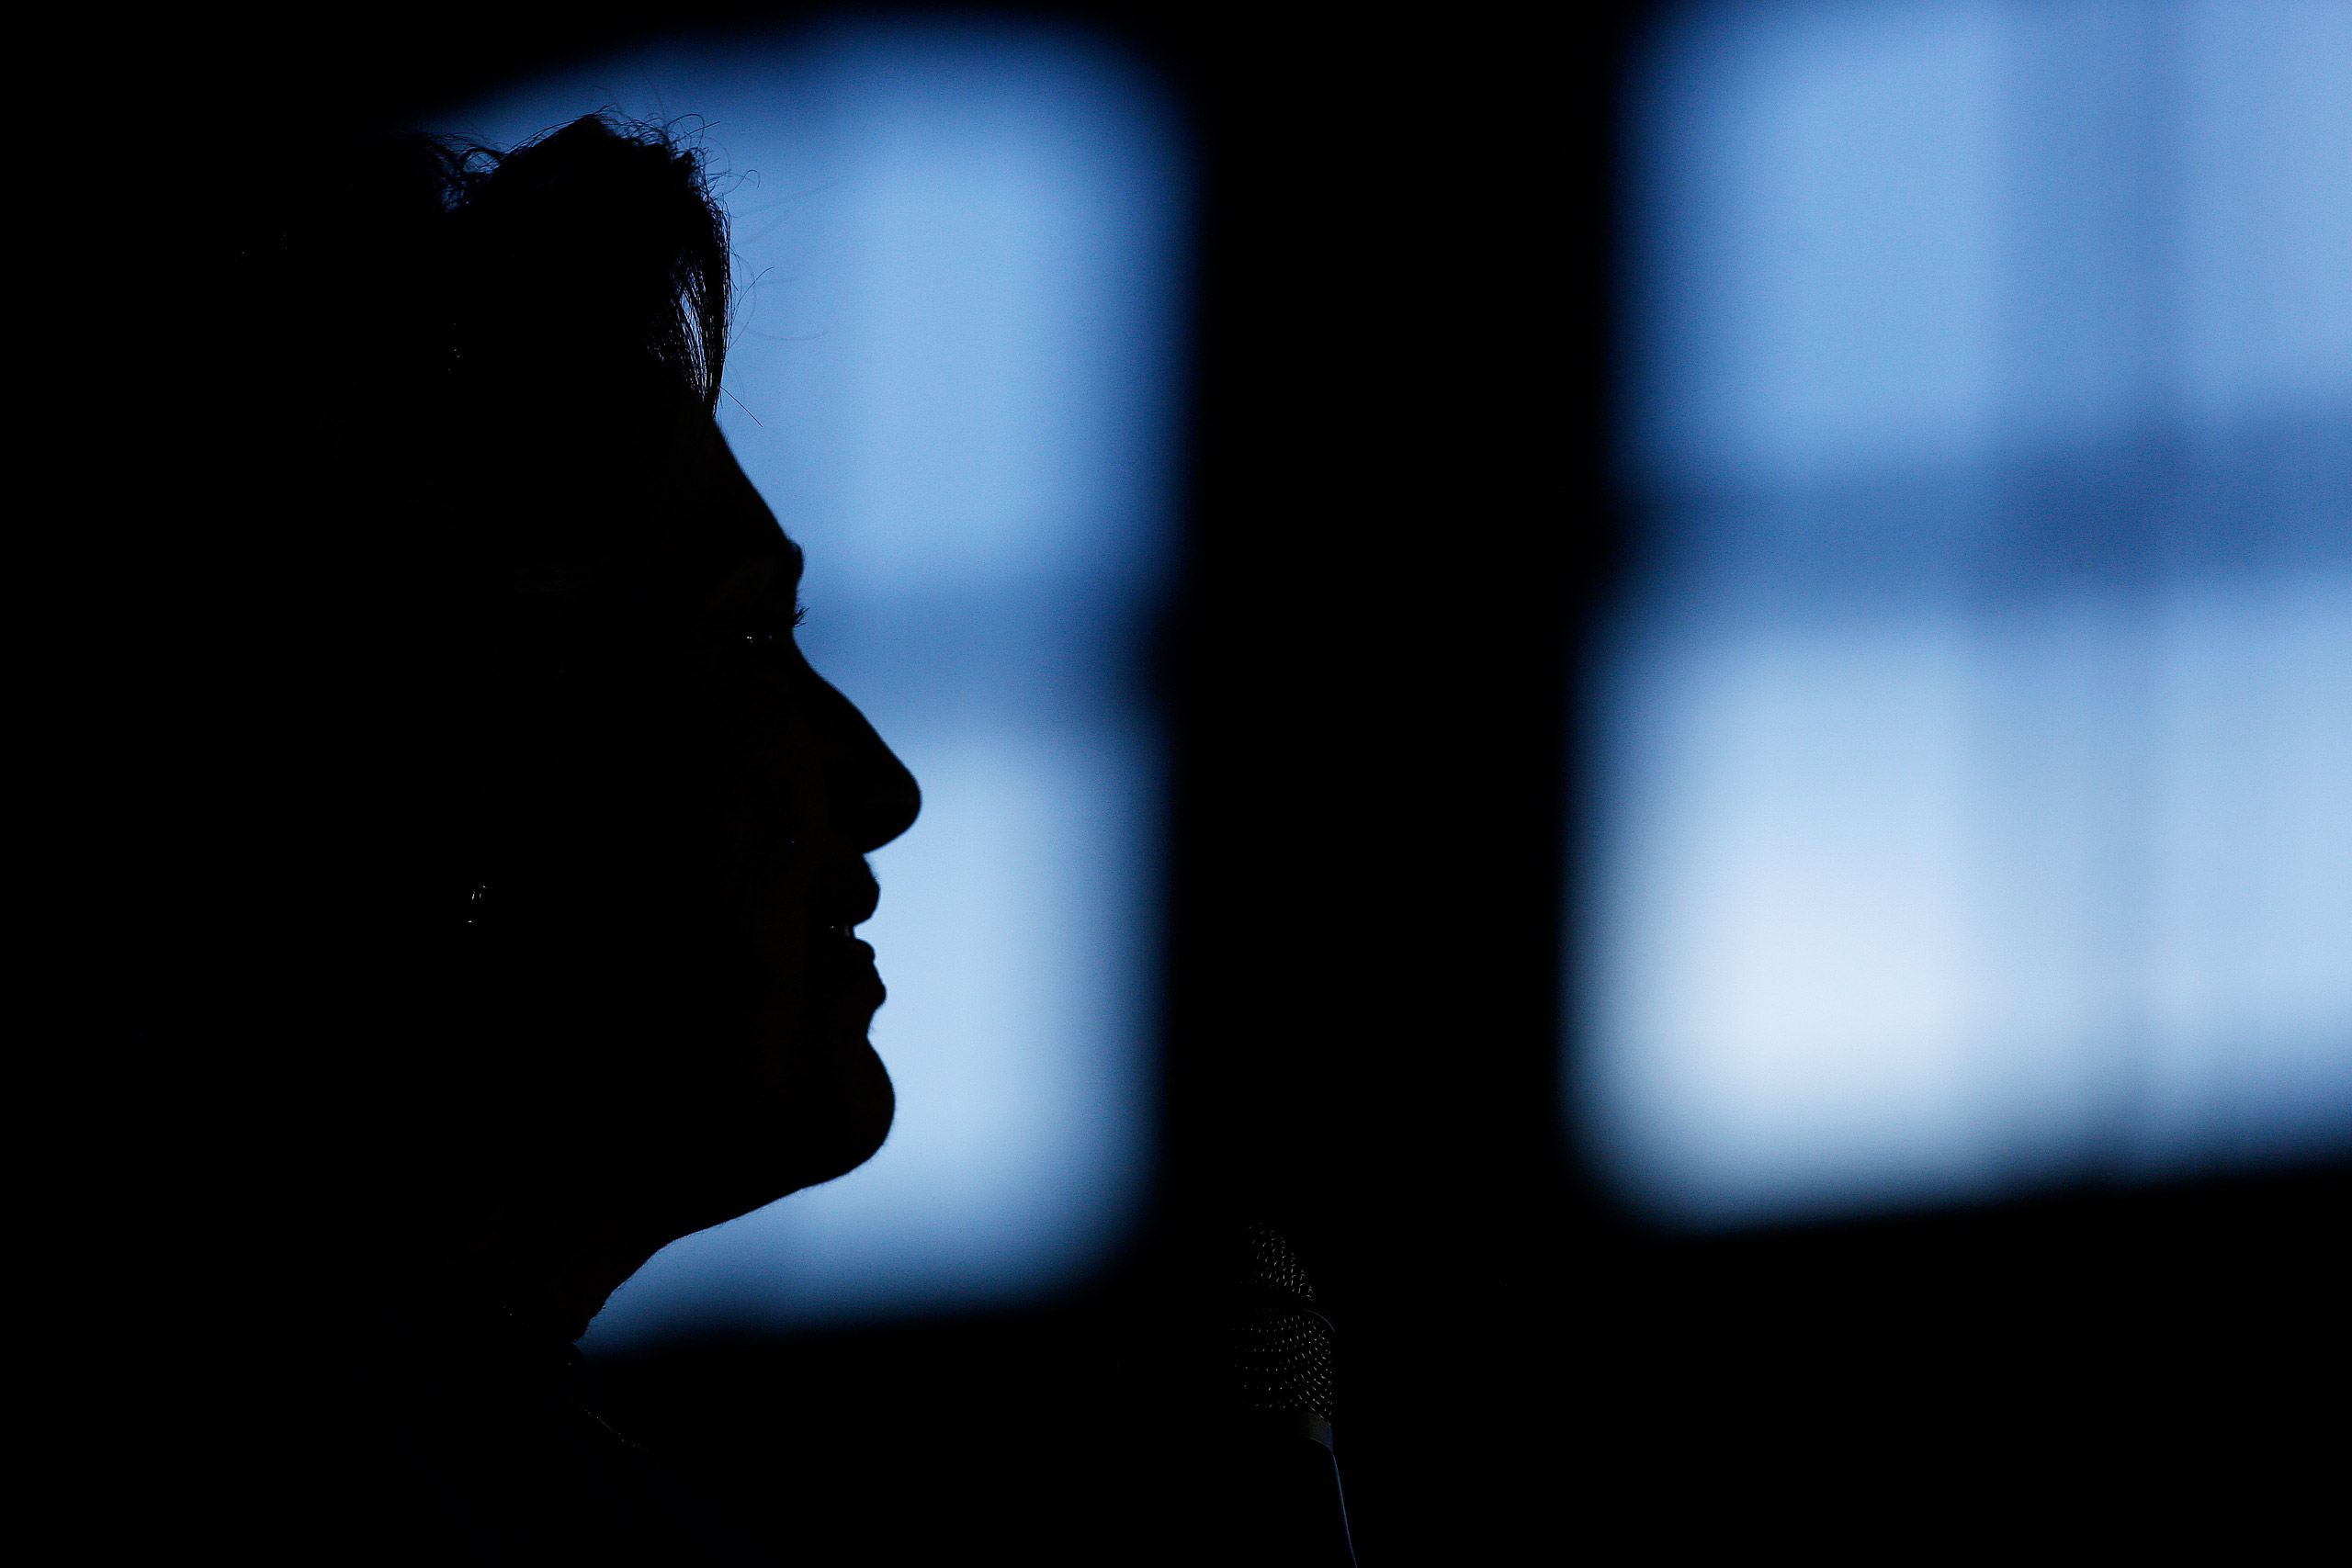 The silhouette of Hillary Clinton, former Secretary of State and 2016 Democratic presidential candidate, is seen during a campaign event in Louisville, Ky., on May 10, 2016.